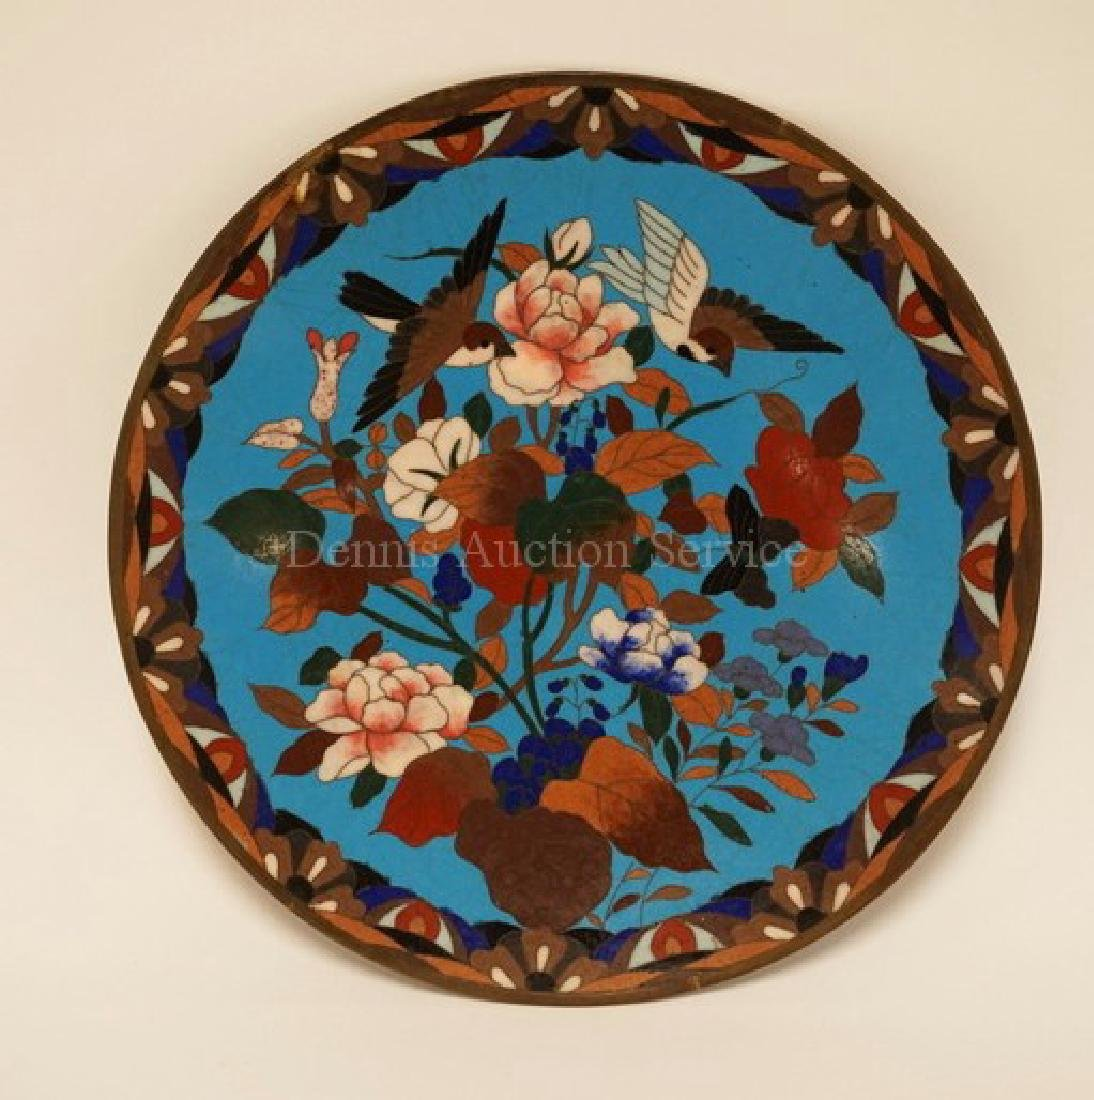 CLOISONNE PLATE WITH BIRDS HOVERING OVER A FLOWERING